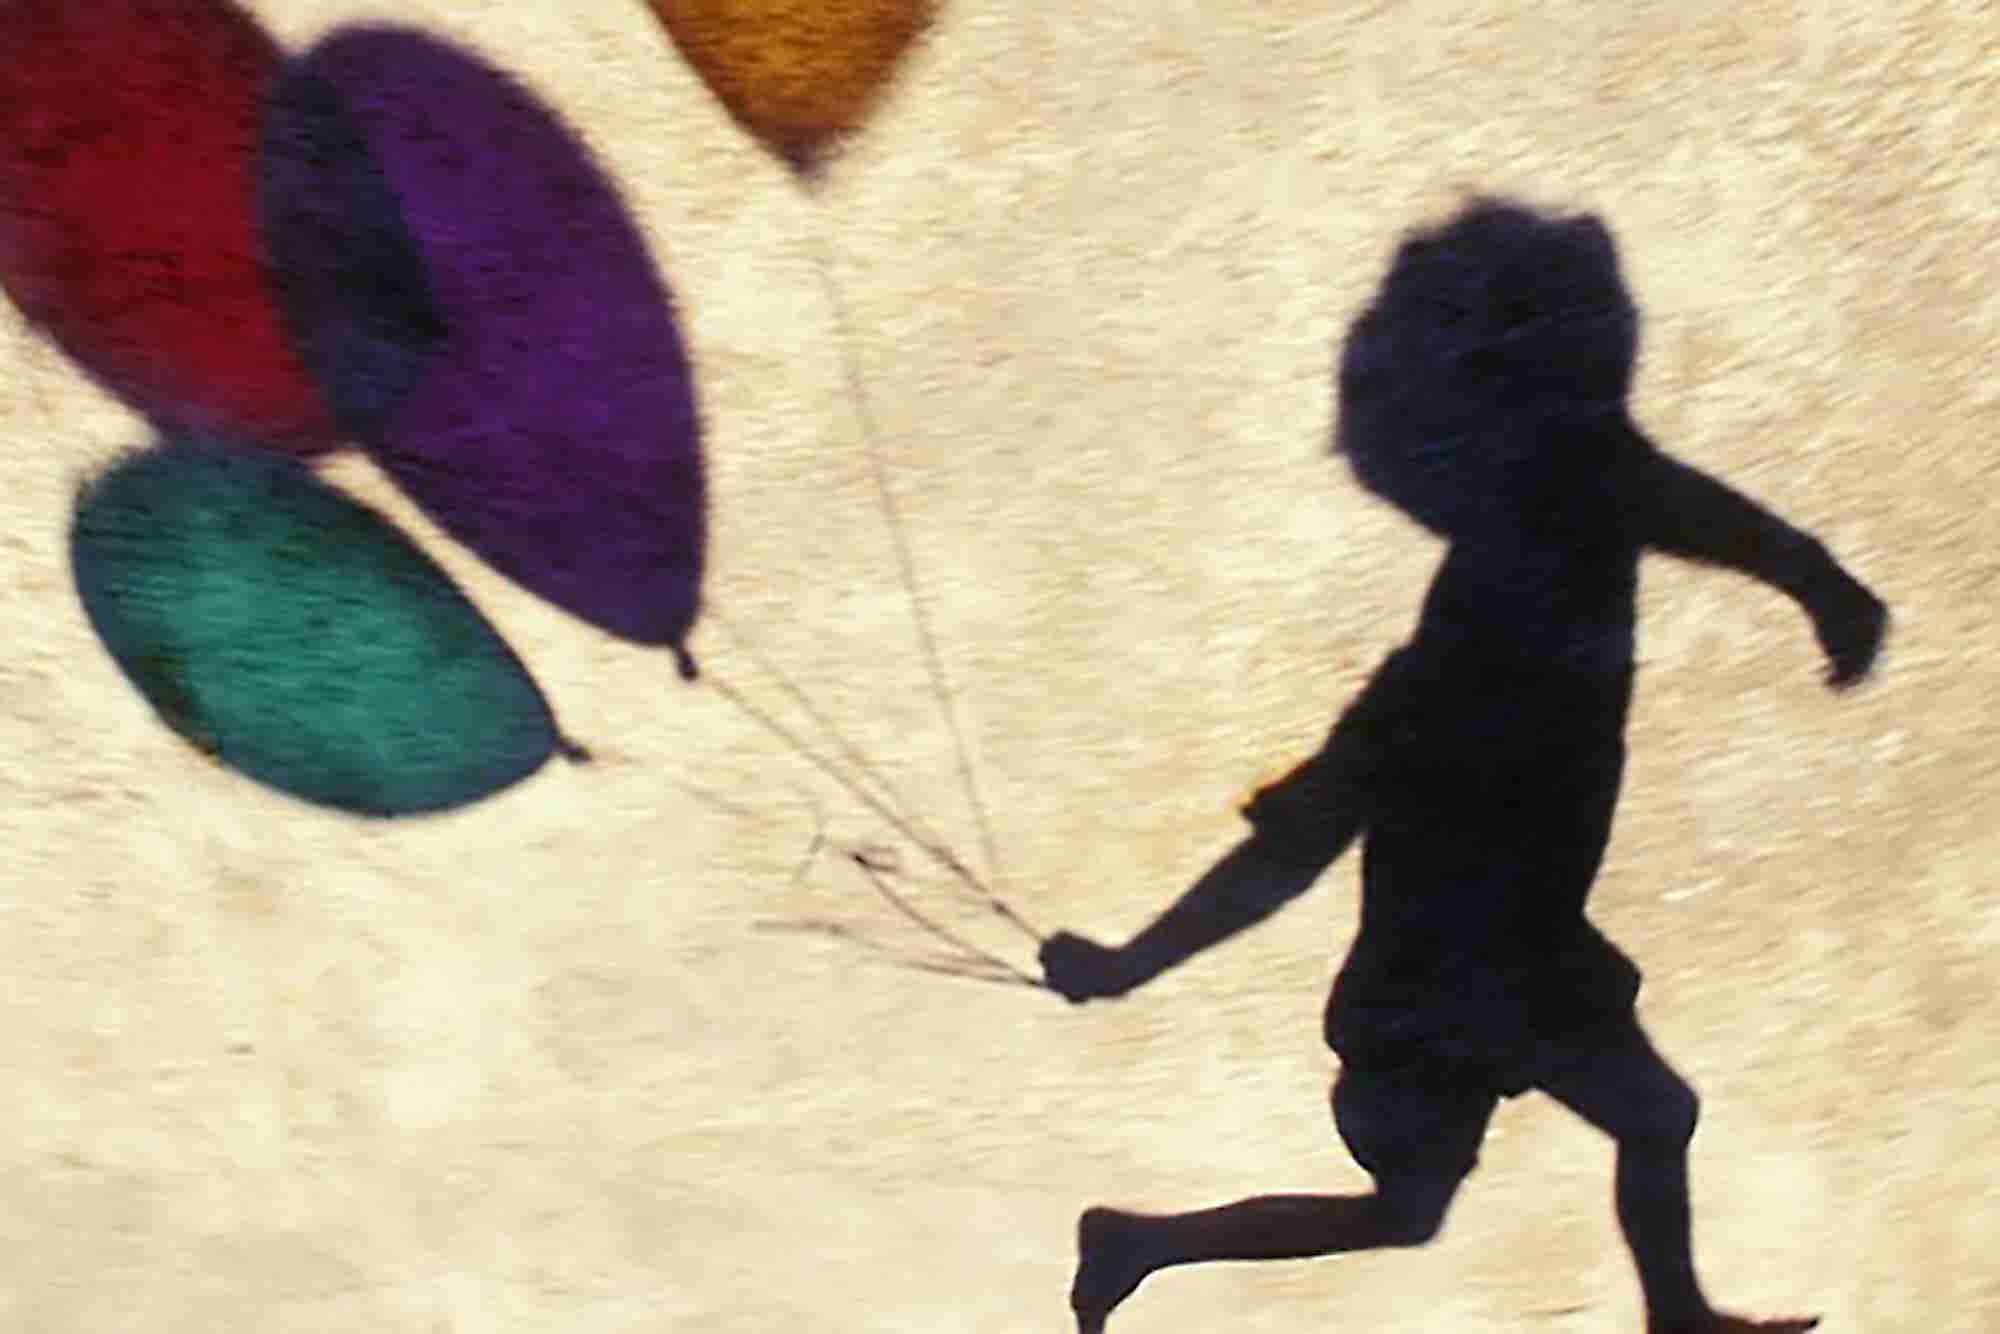 10 Ways to Channel Your Inner Child